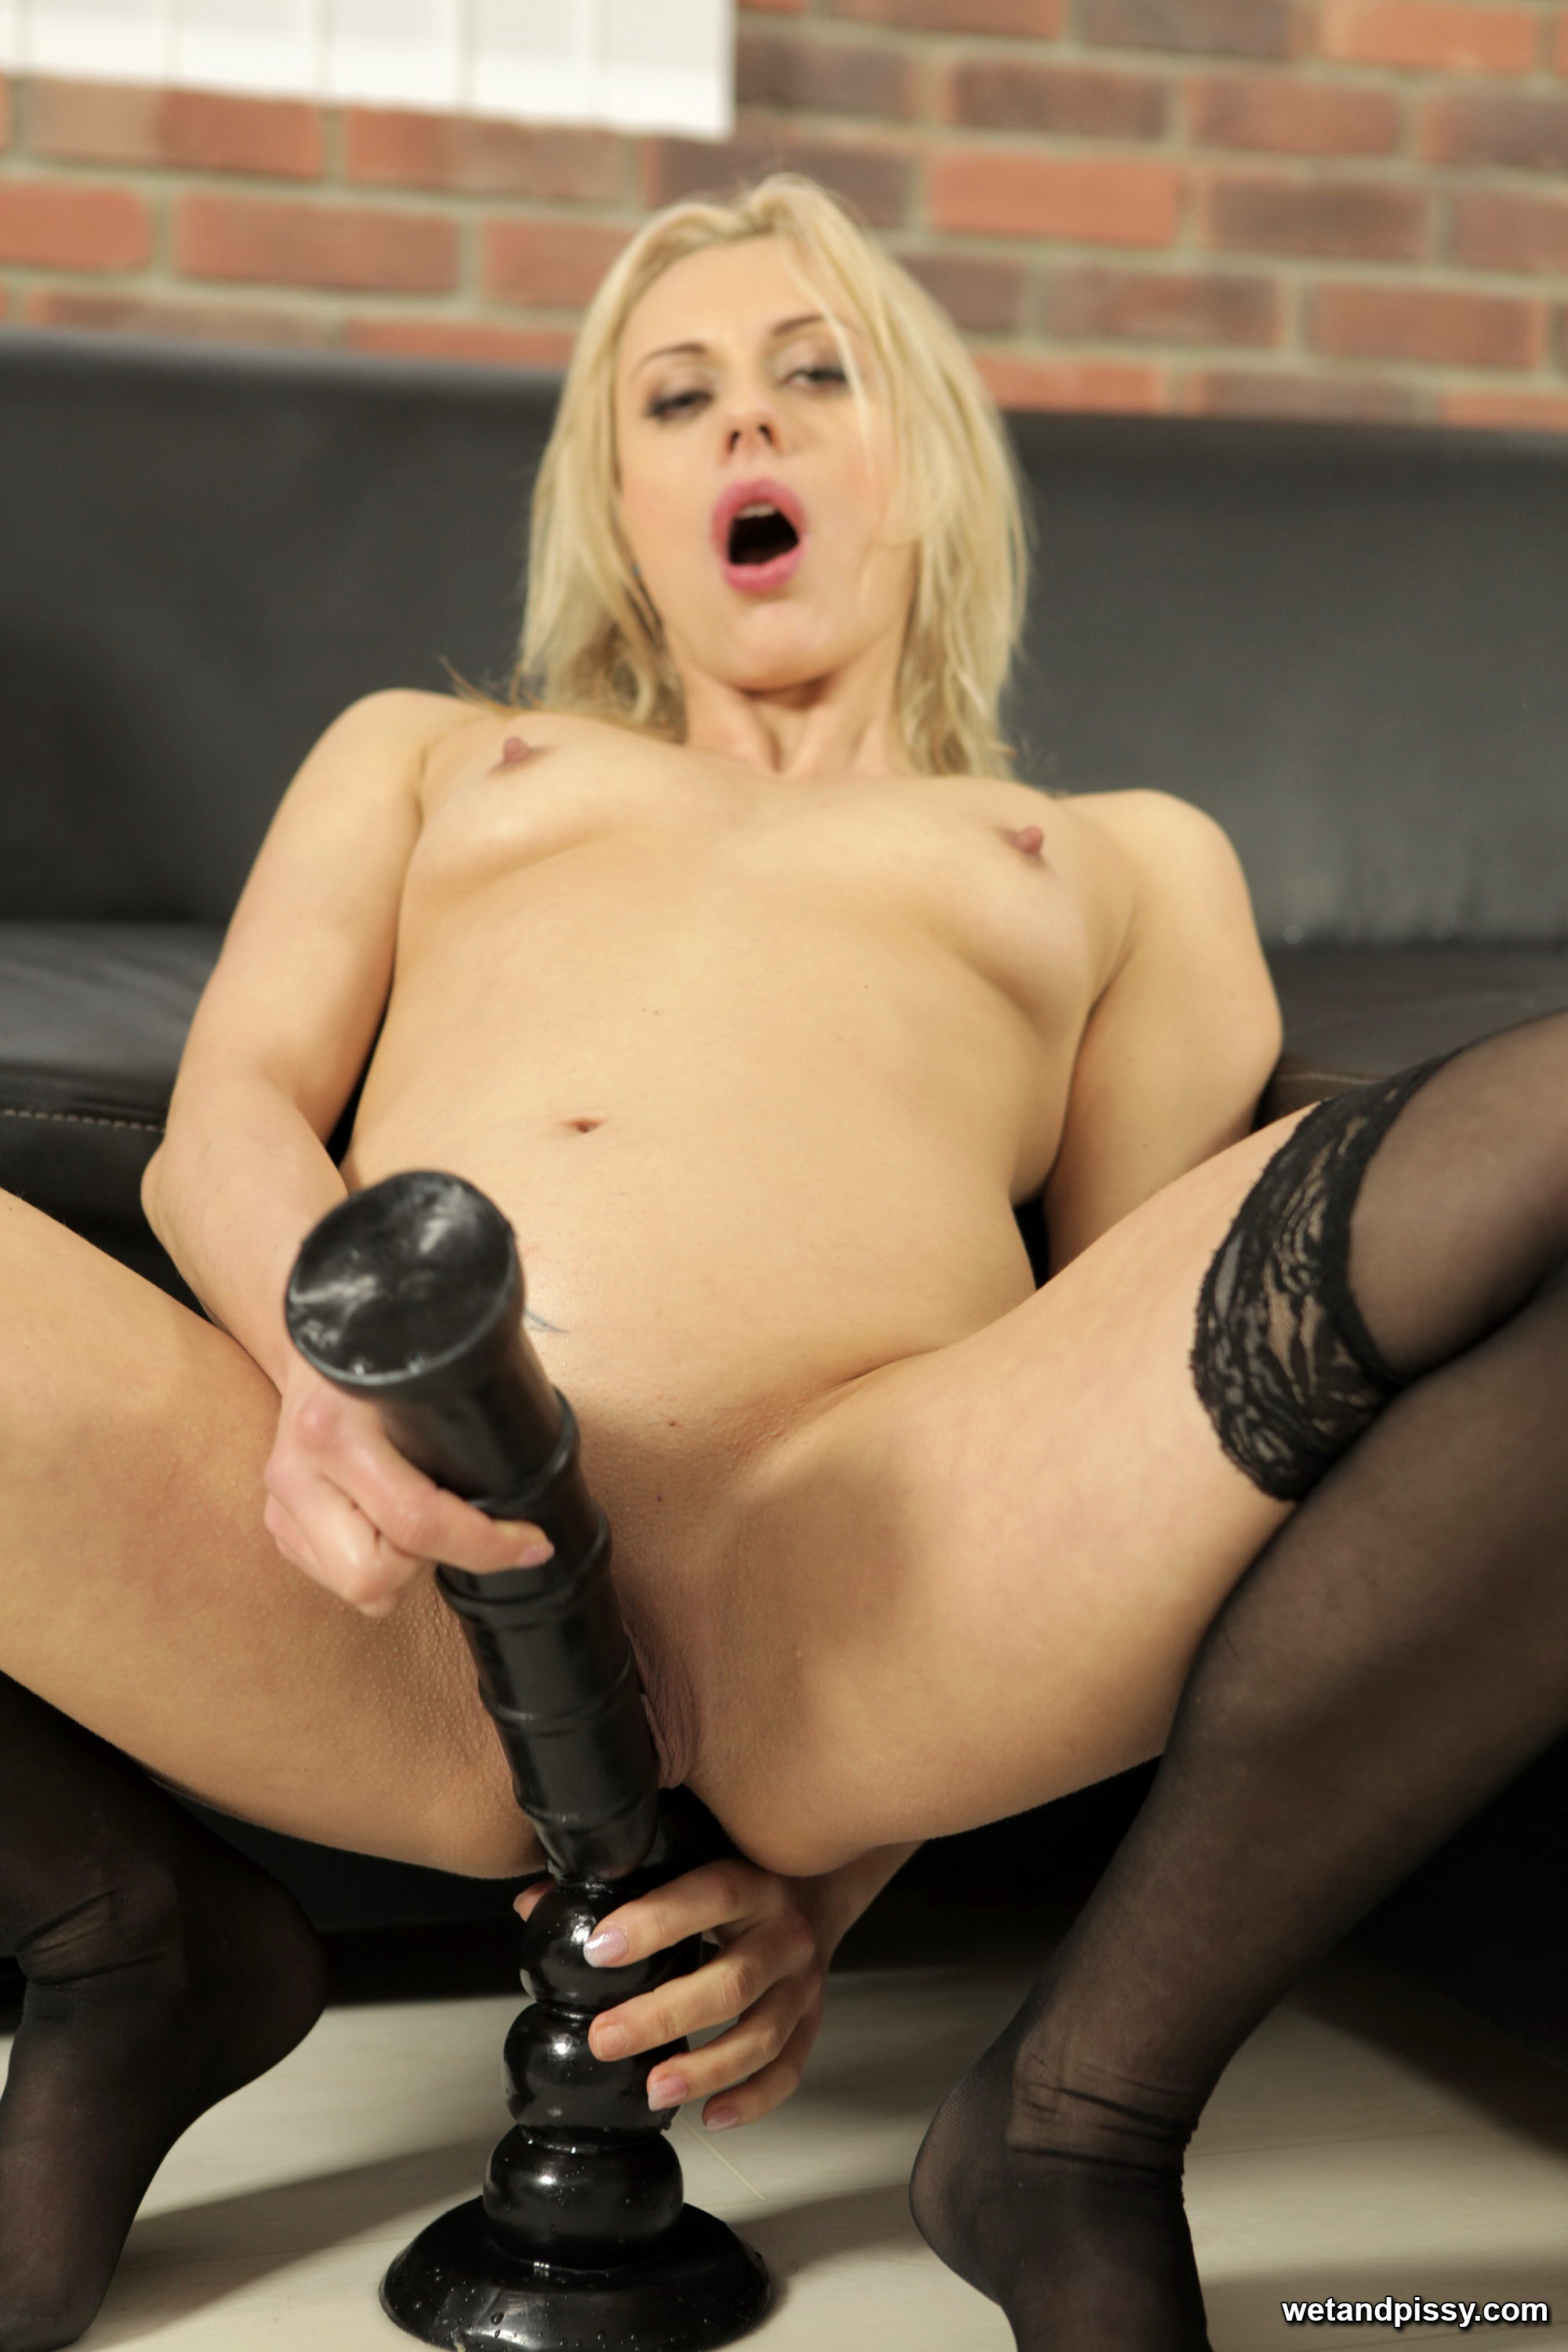 She looks Babe playing with dildo